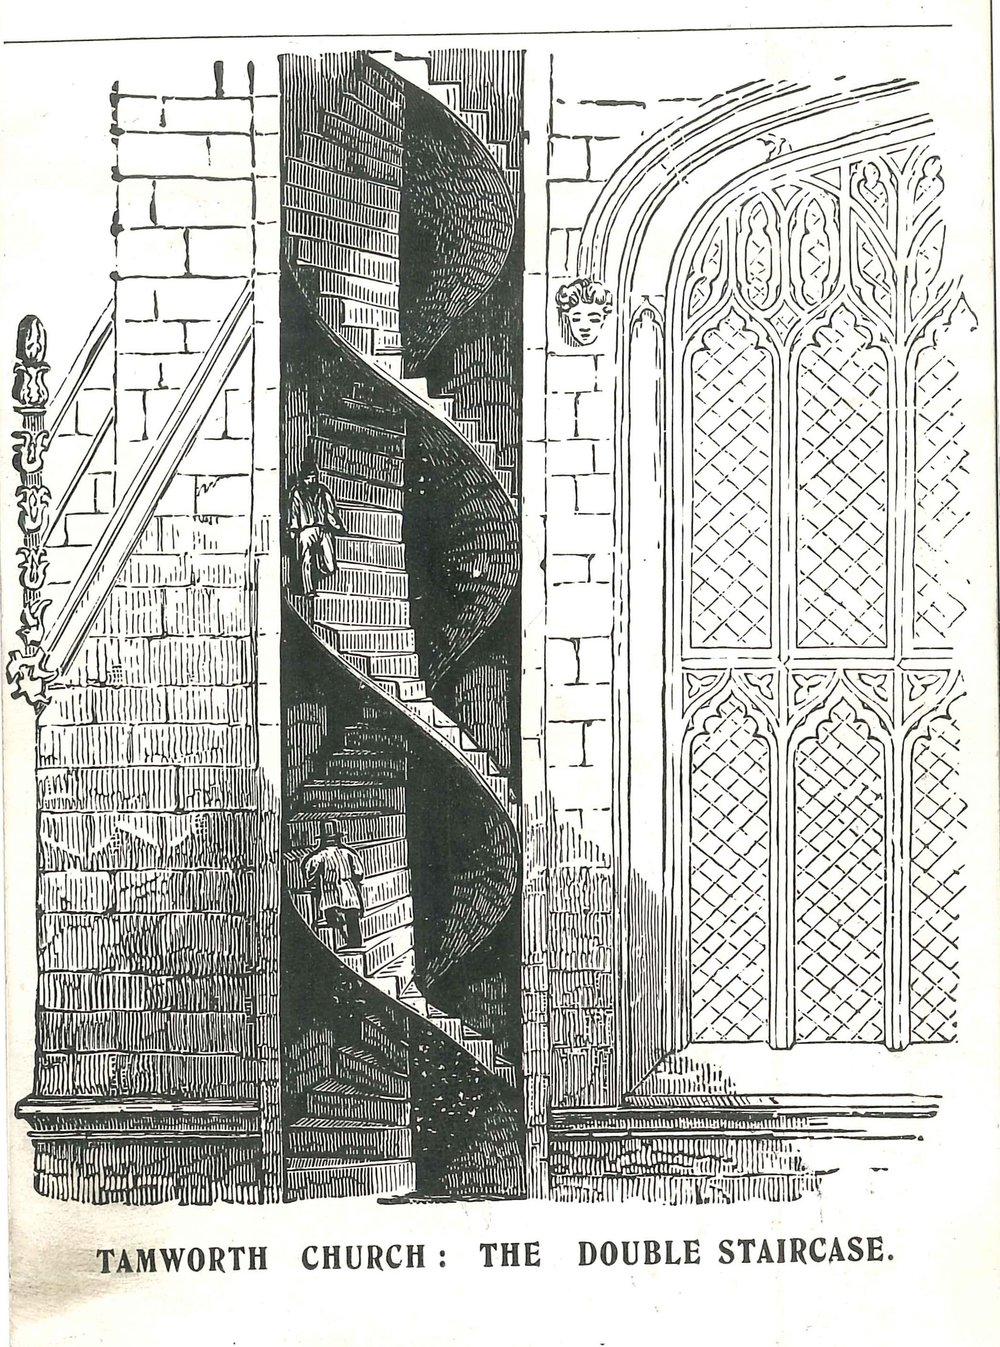 Image from a 1900 postcard of the double helix staircase at St Editha's Church, Tamworth. Image ©  Tamworth Heritage Trust